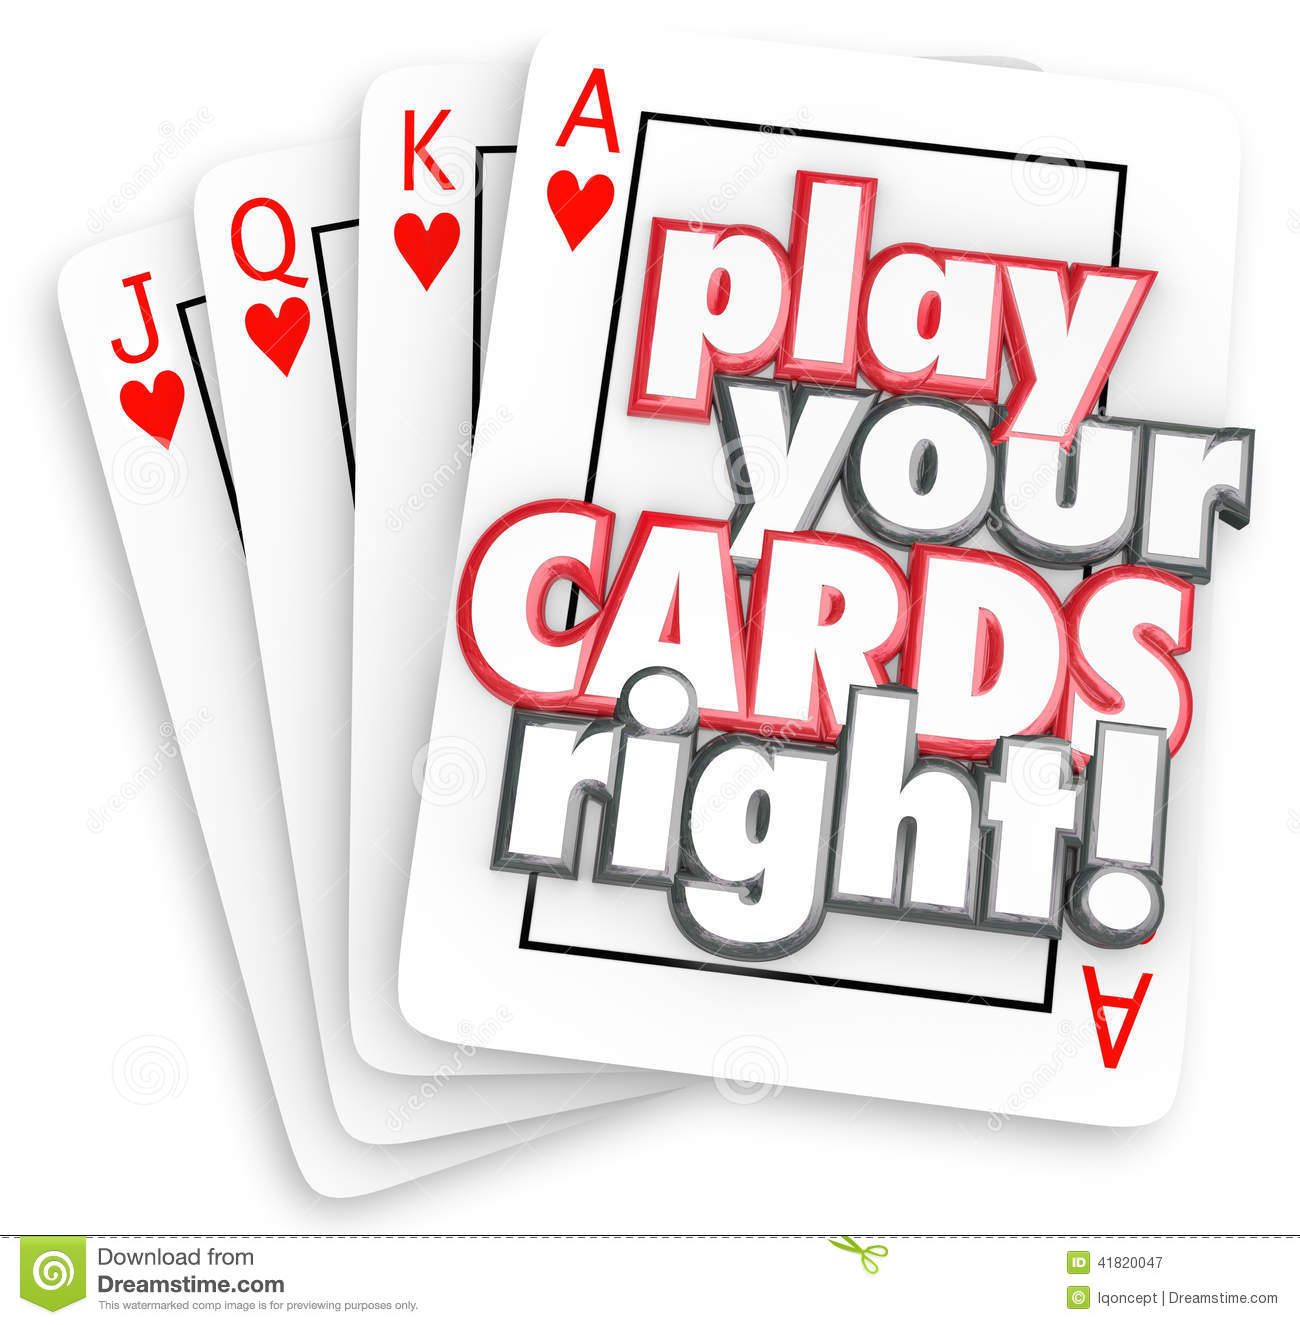 how to play your cards right